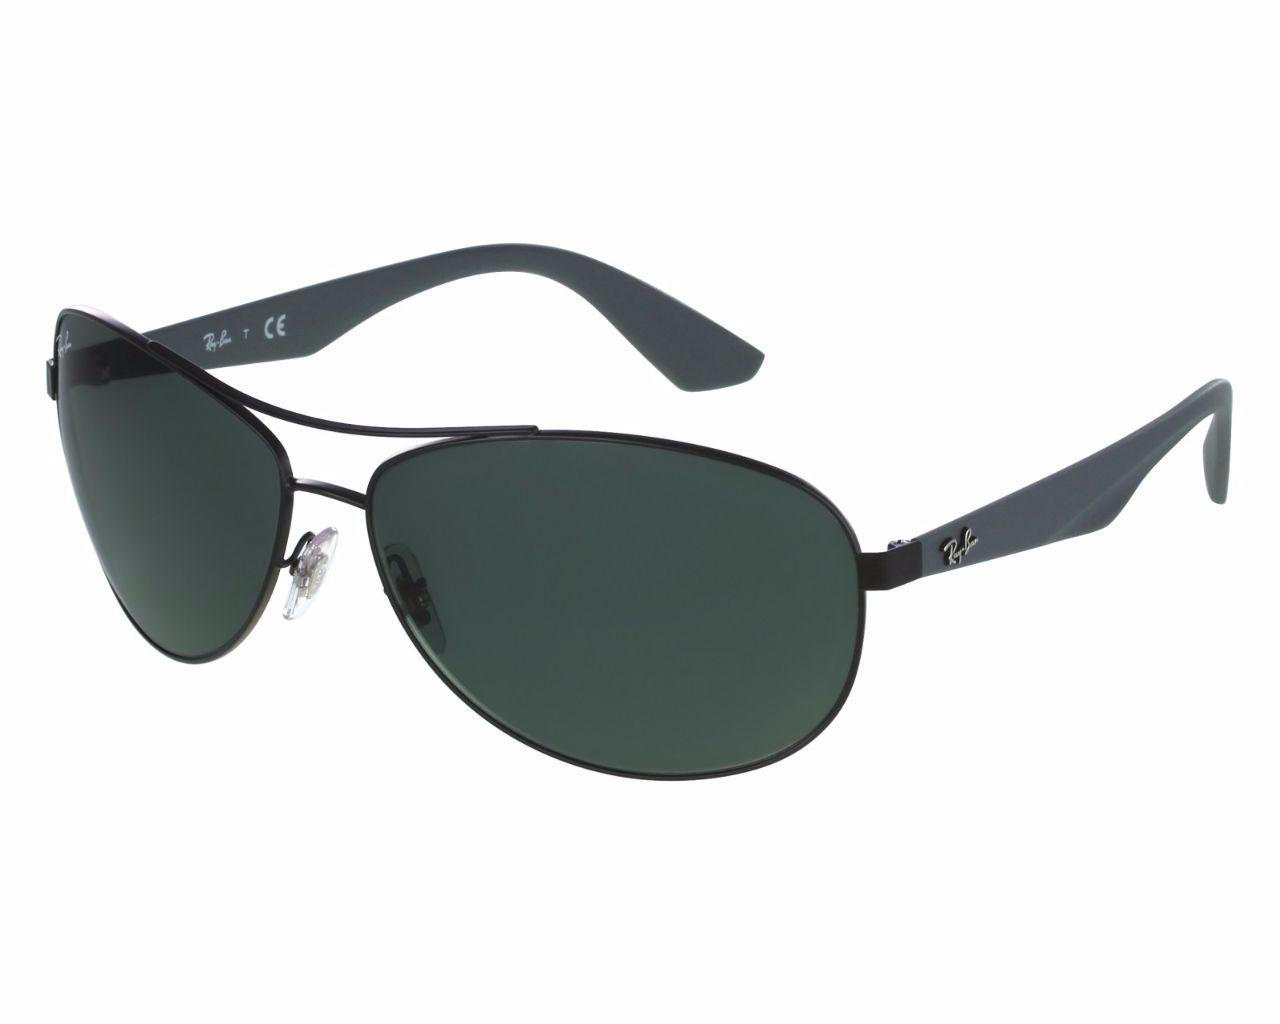 98e49bb6fb Lyst - Ray-Ban Rb3526 Sunglasses in Green for Men